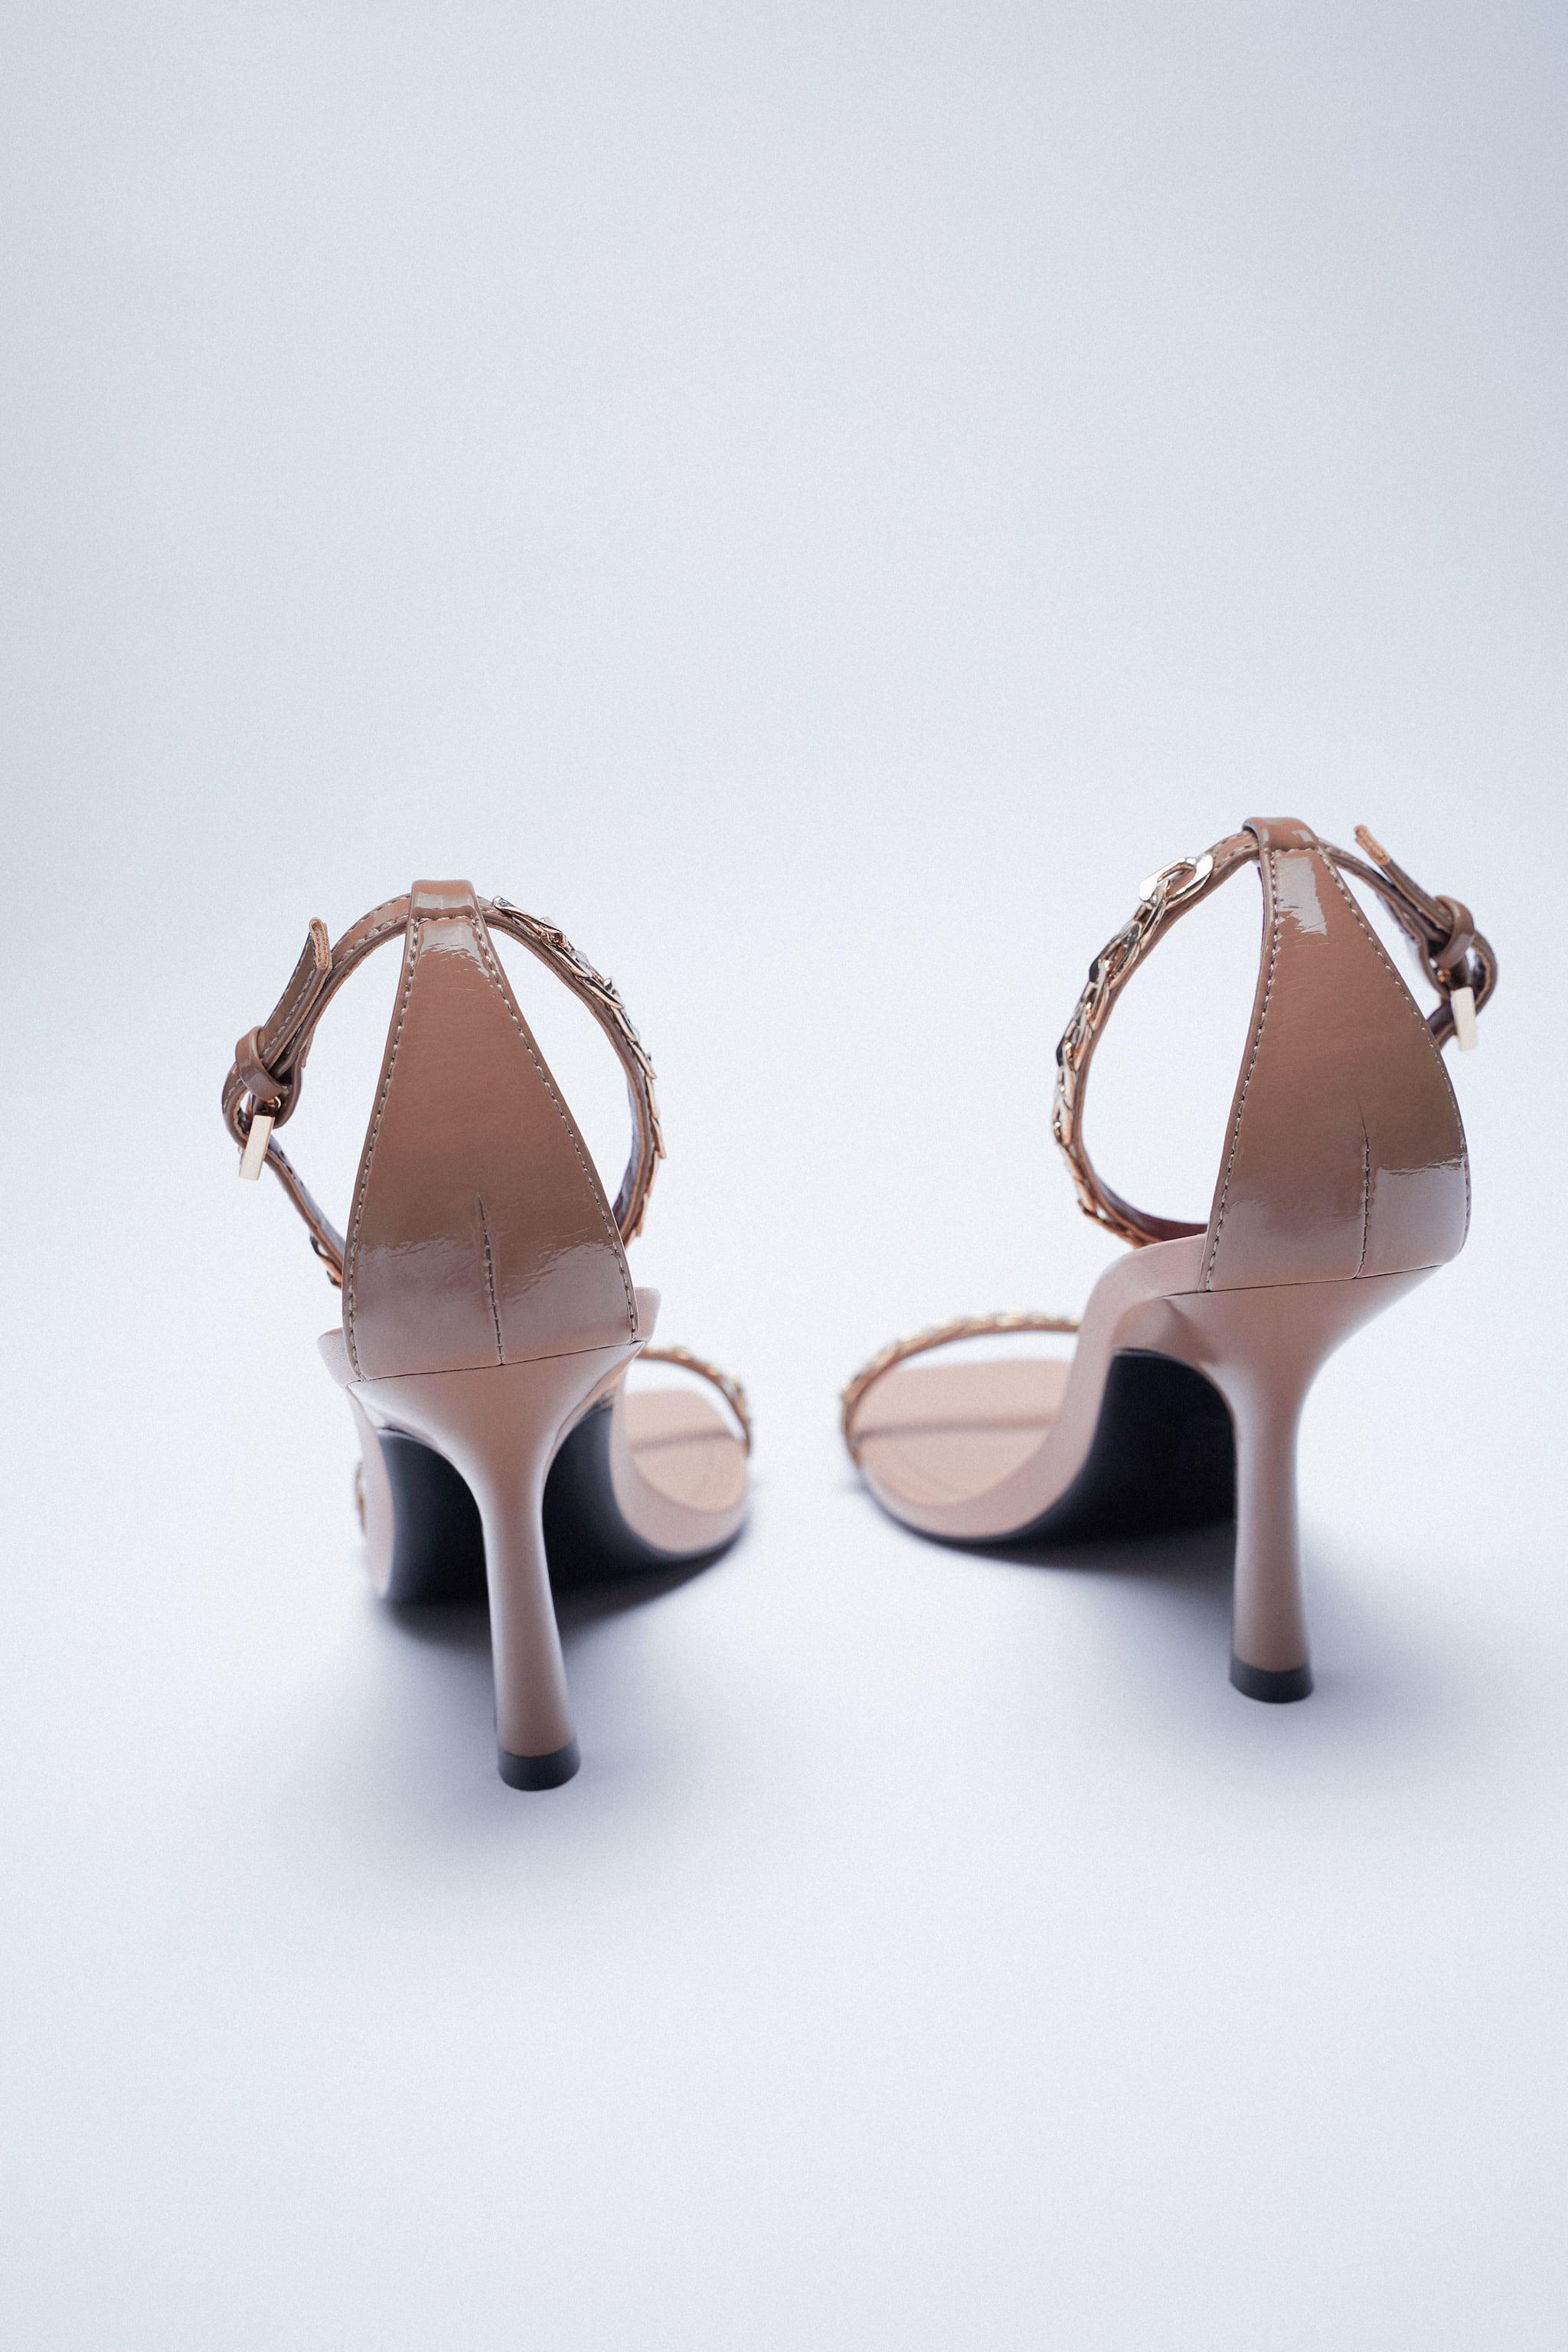 HIGH HEELED SANDALS WITH CHAIN 5